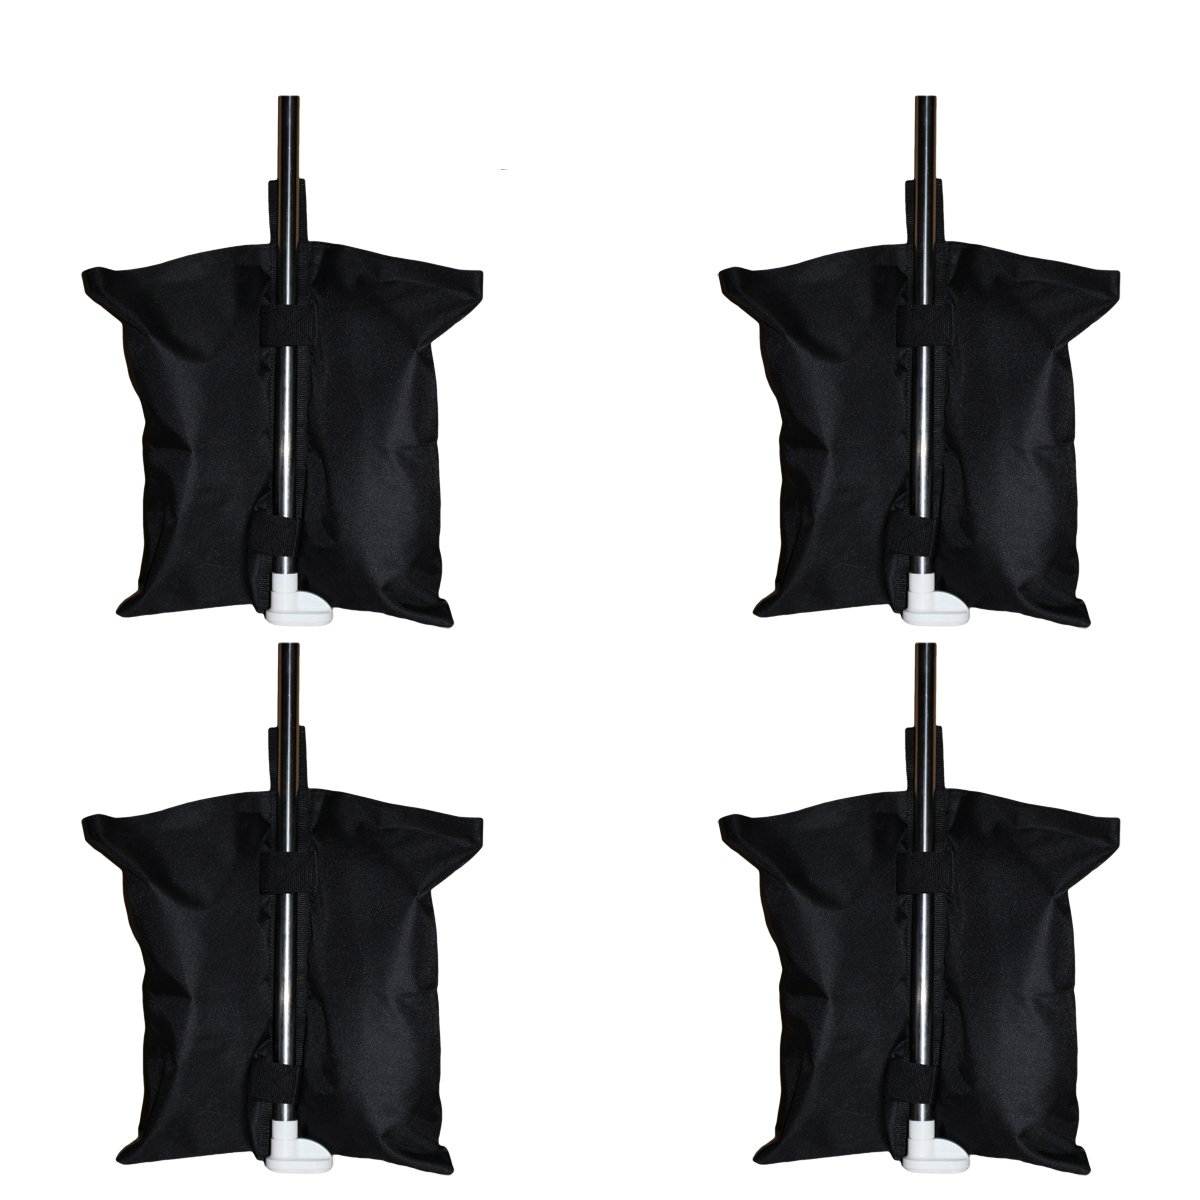 4pcs/pack Industrial Grade Heavy Duty Double-Stitched 17-inch Sand Bag Anchor Kit Gazebo Tent Leg Weight Bag for Pop up Canopy Tent Weighted Feet Bag